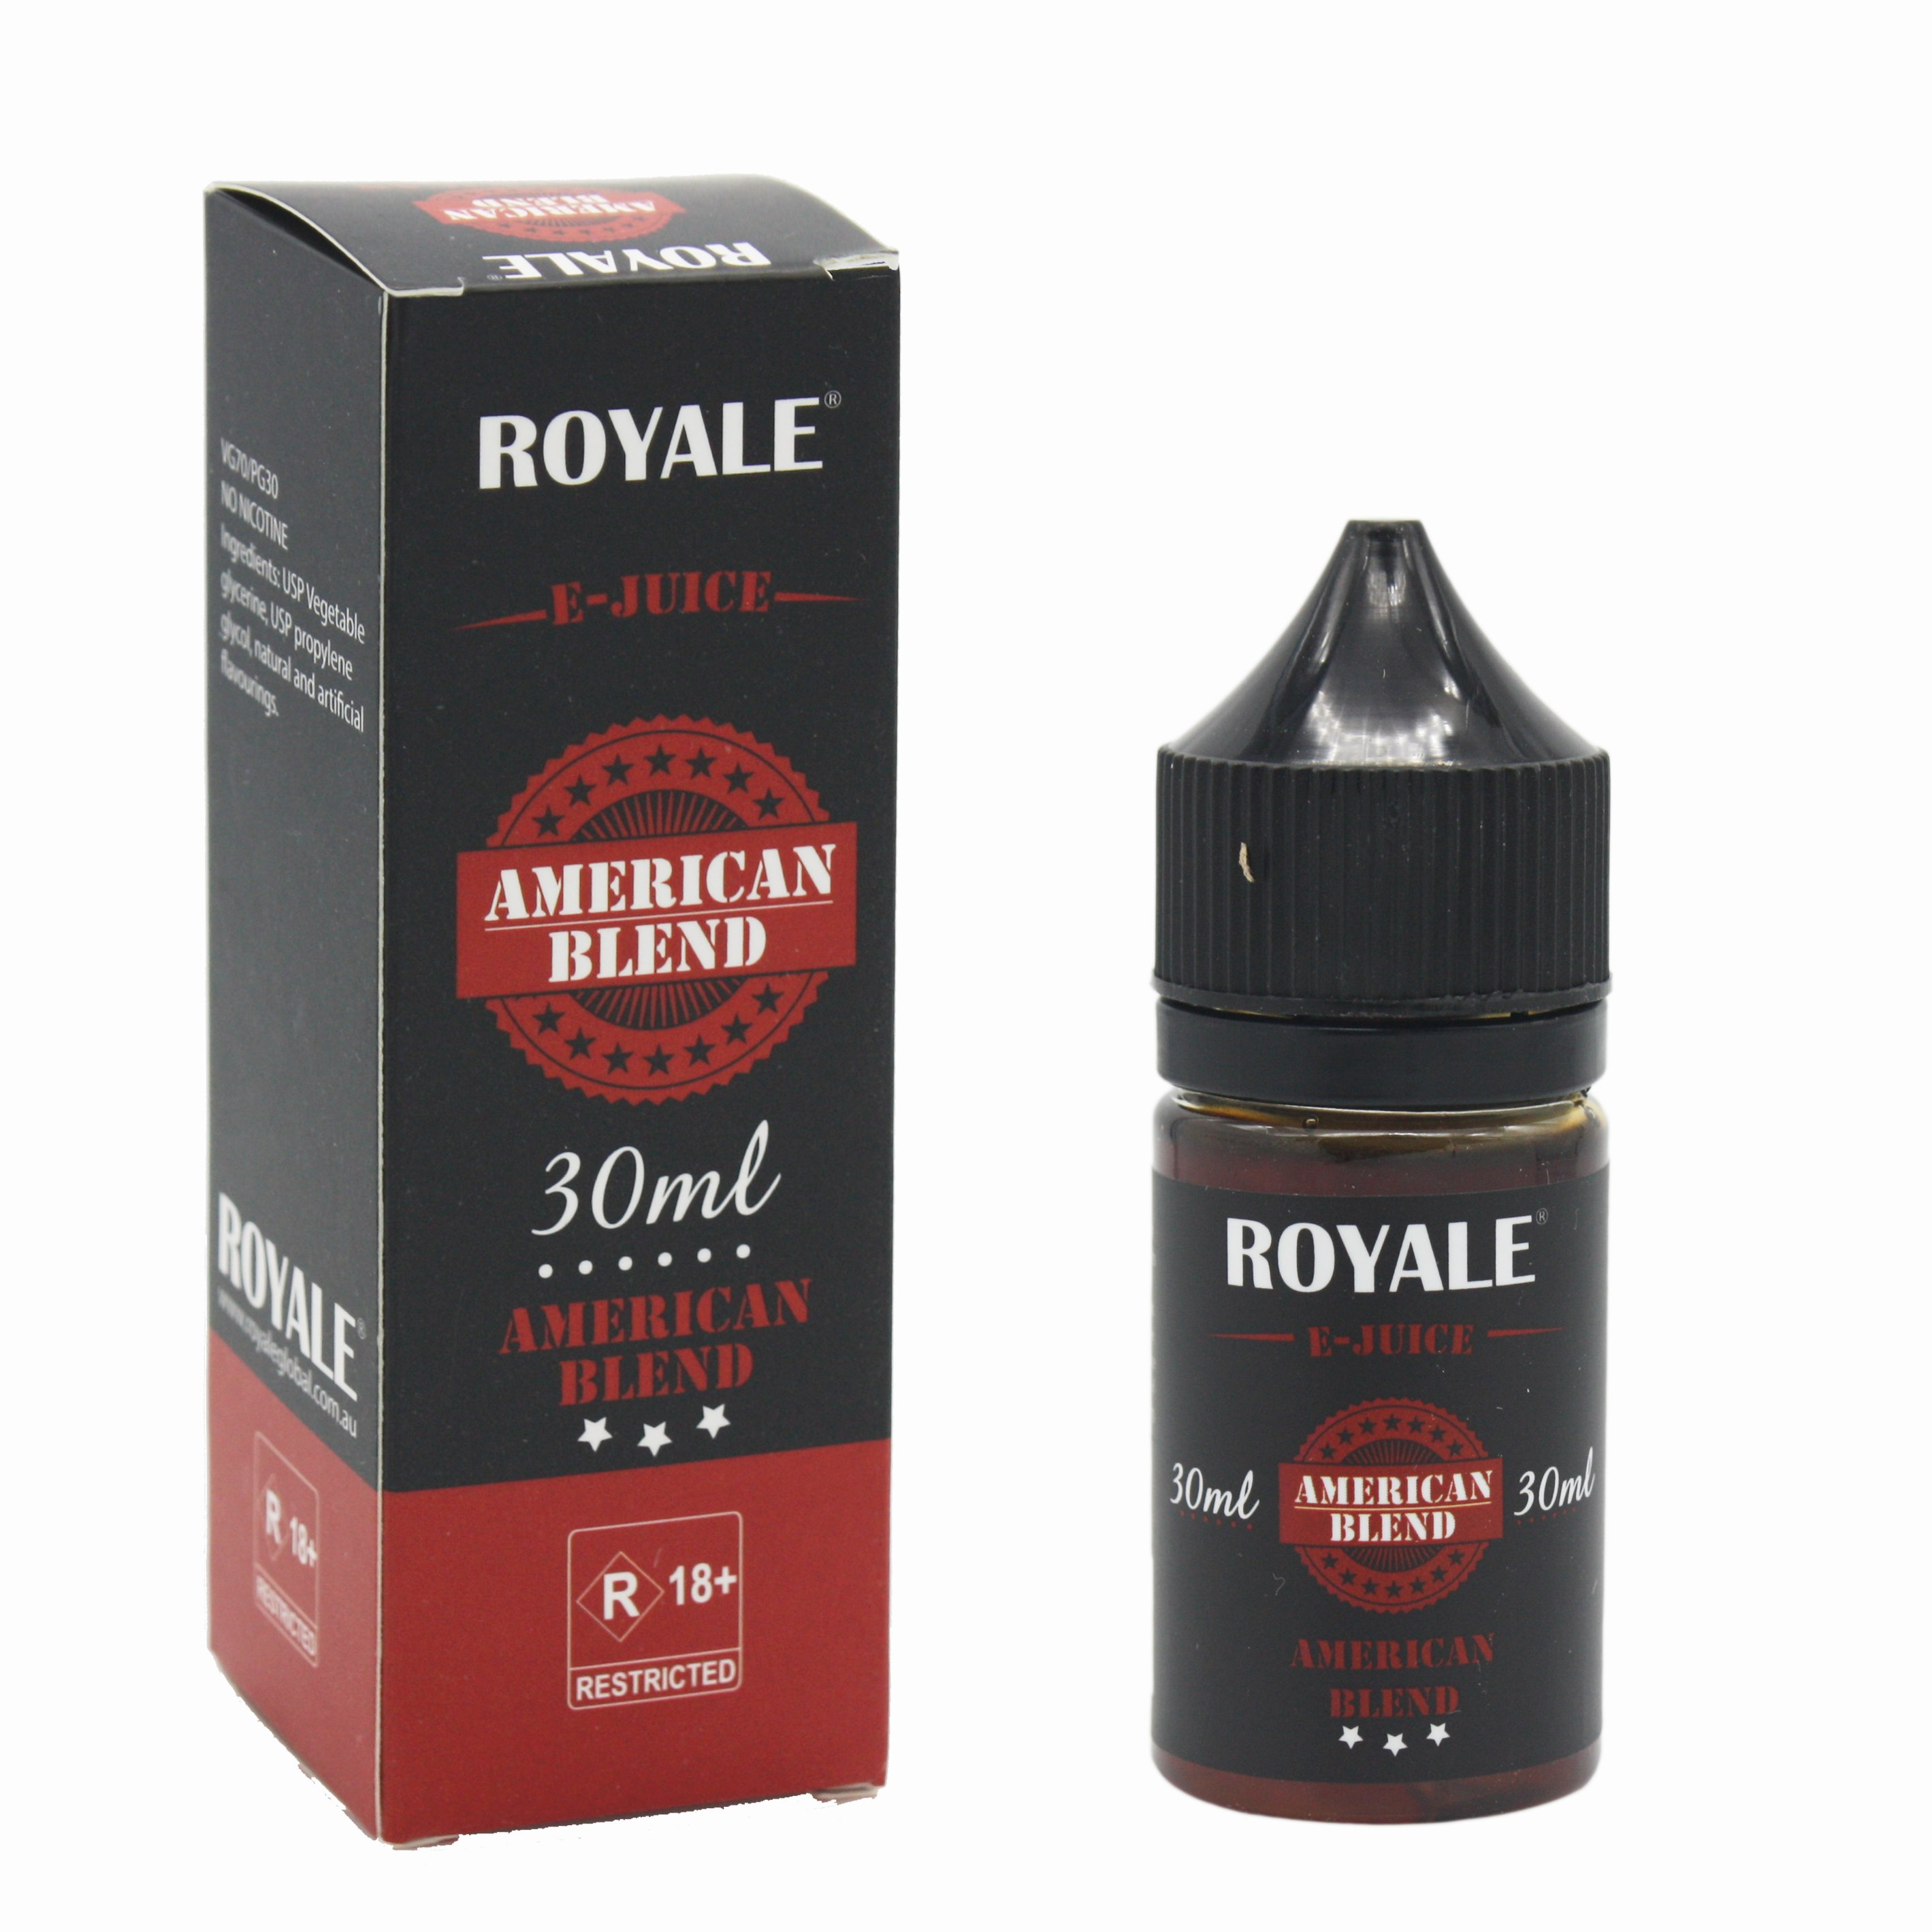 Royale E-juice American Blend 30ml